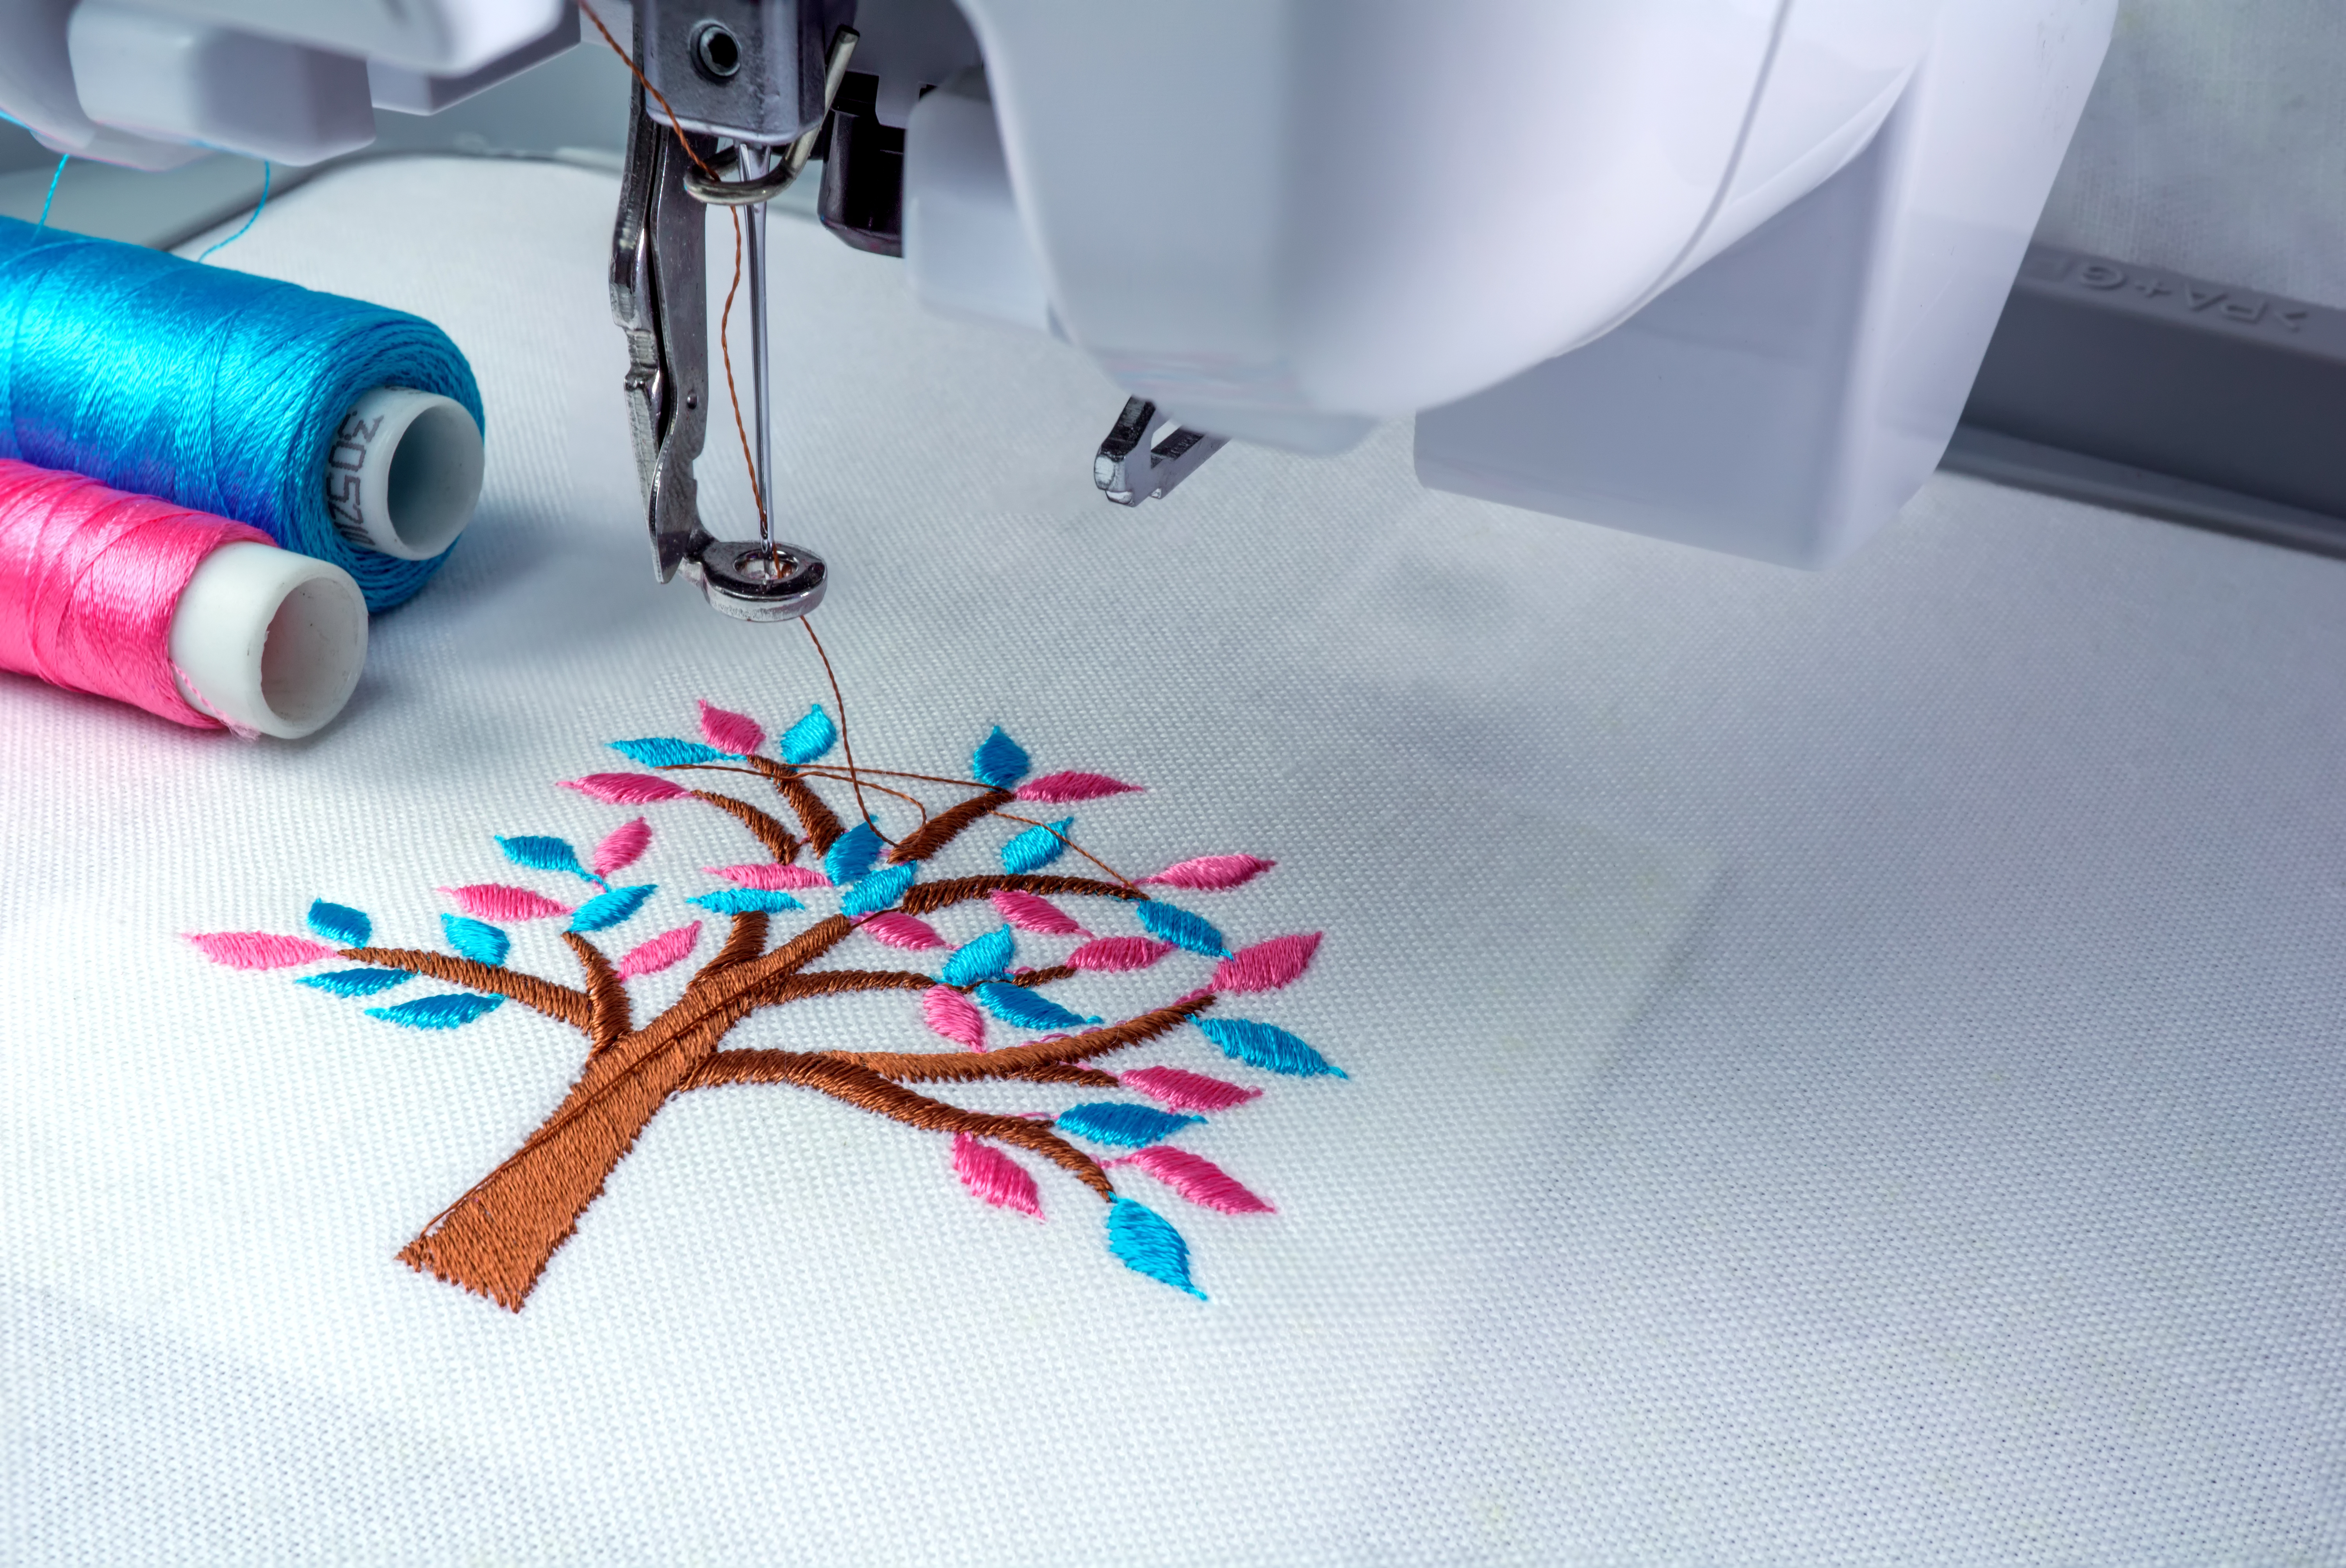 Quality embroidery